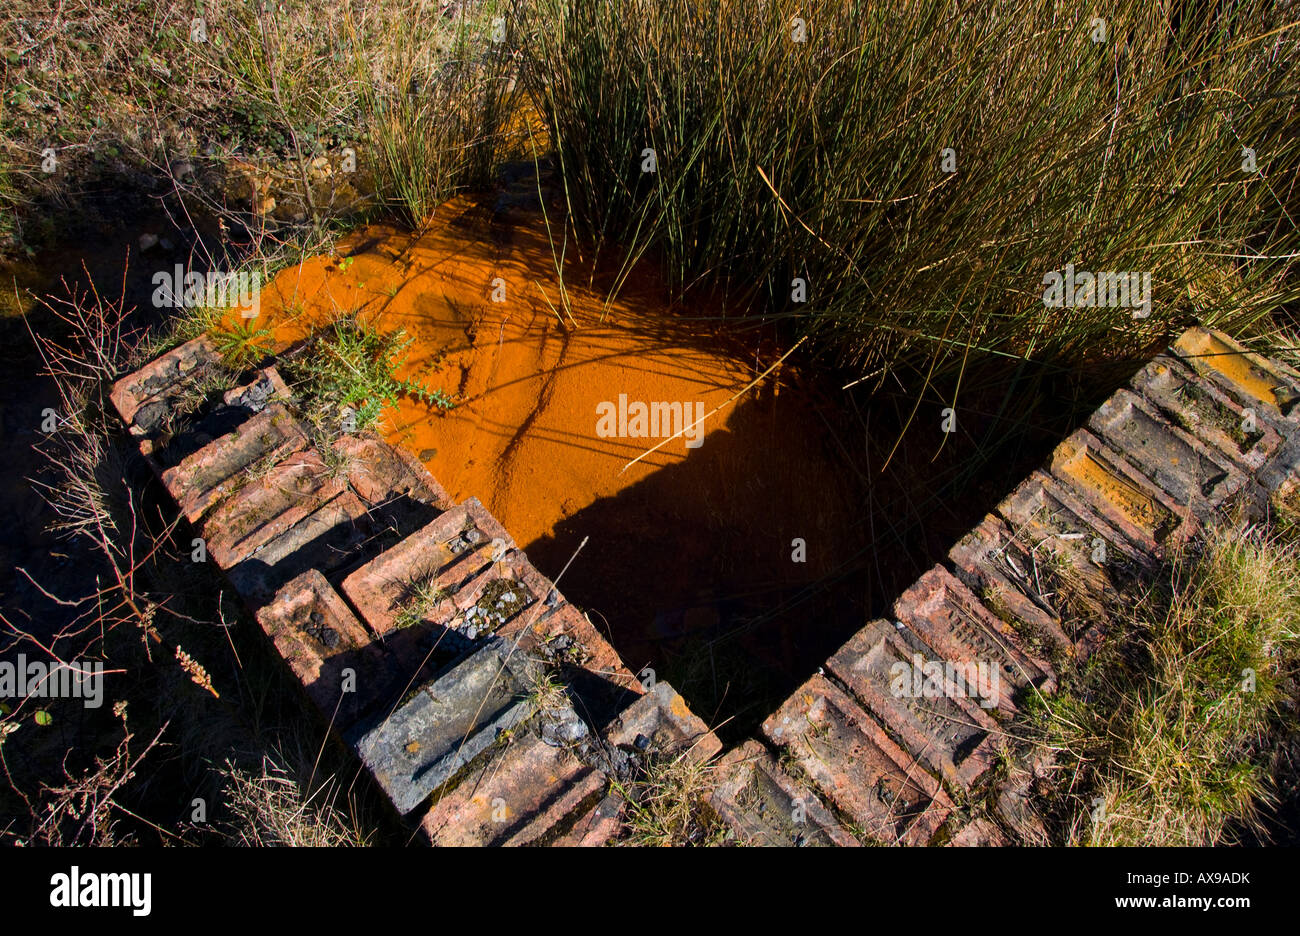 Polluted mine water from the former Blaenserchan Colliery near Pontypool South Wales UK EU - Stock Image